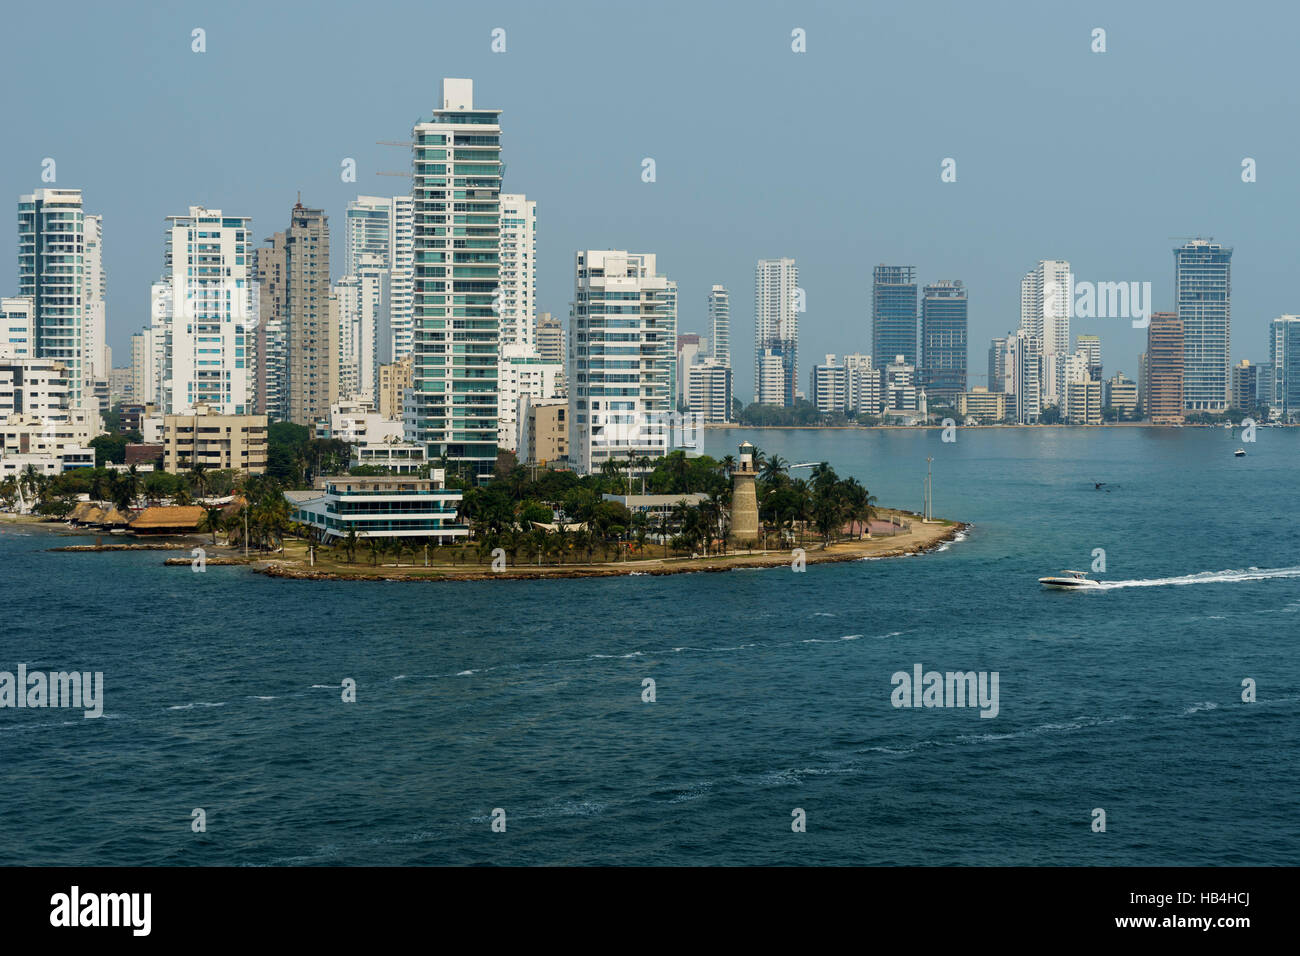 Hi-rise buildings of El Laguito district in the foreground and cityscape seen from seaward. Cartagena, Colombia - Stock Image